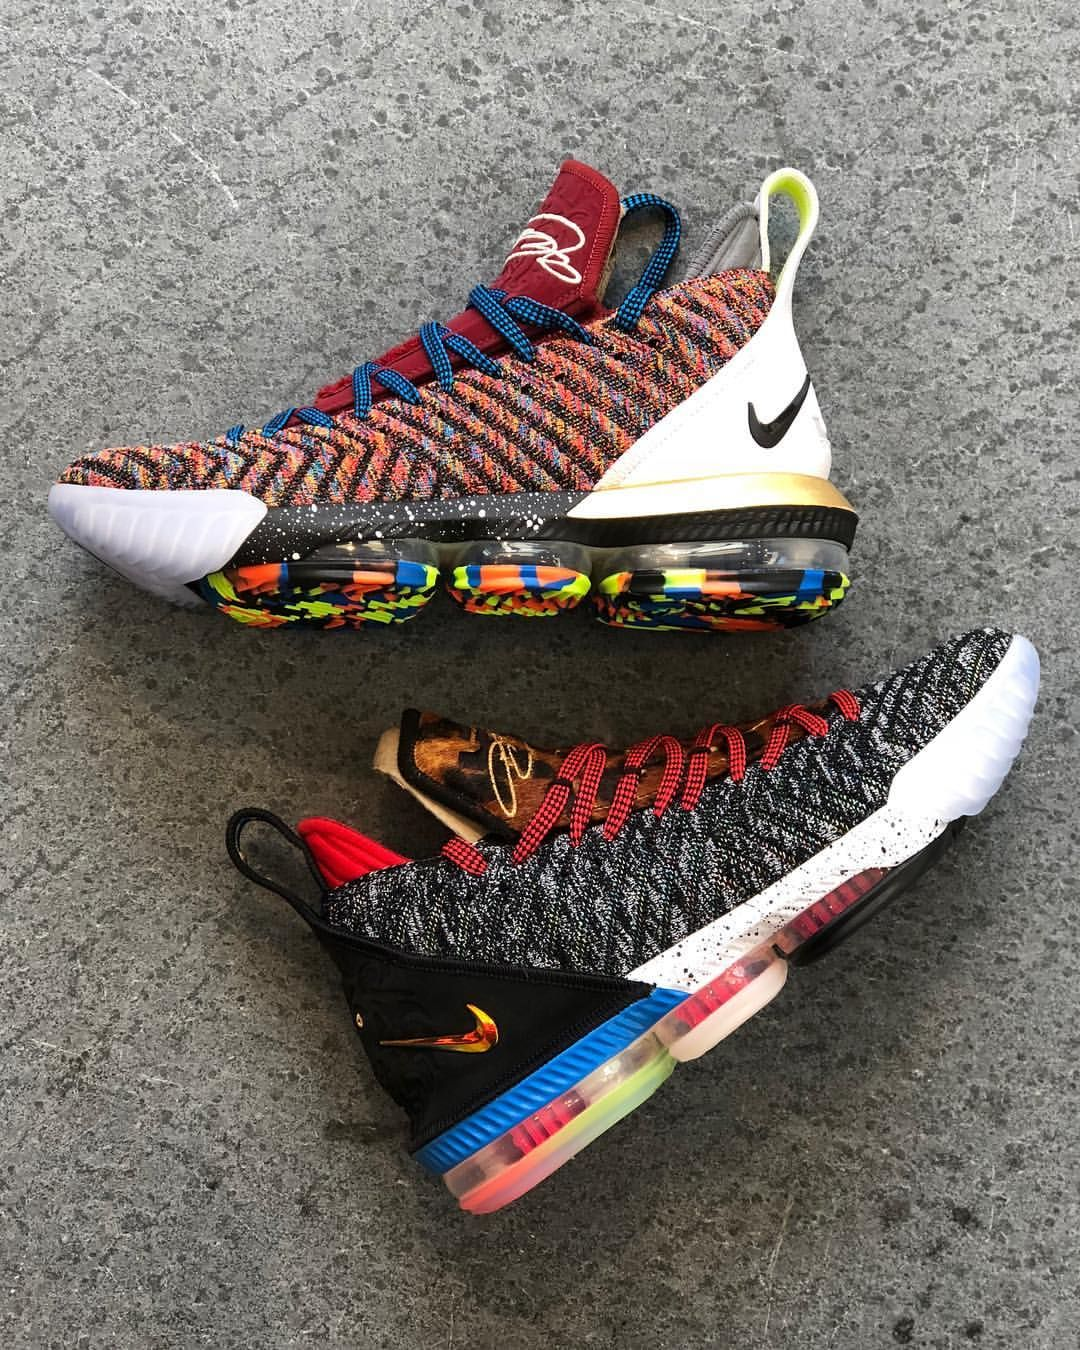 """6f81213e9682c The Nike LeBron 16 """"1 Thru 5"""" draws in elements of the first five ..."""